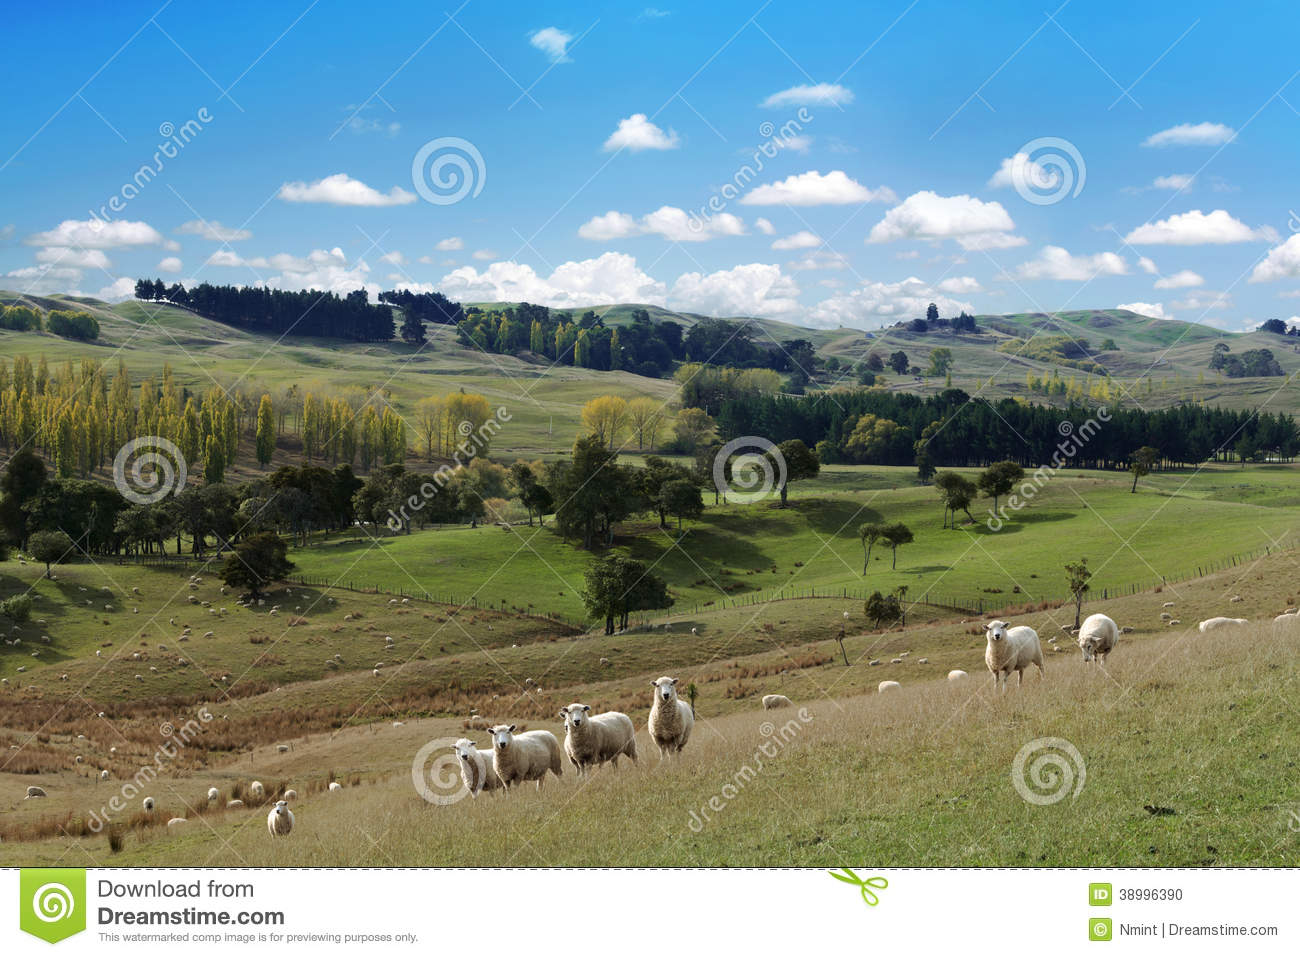 Summer picturesque landscape with herd of sheep